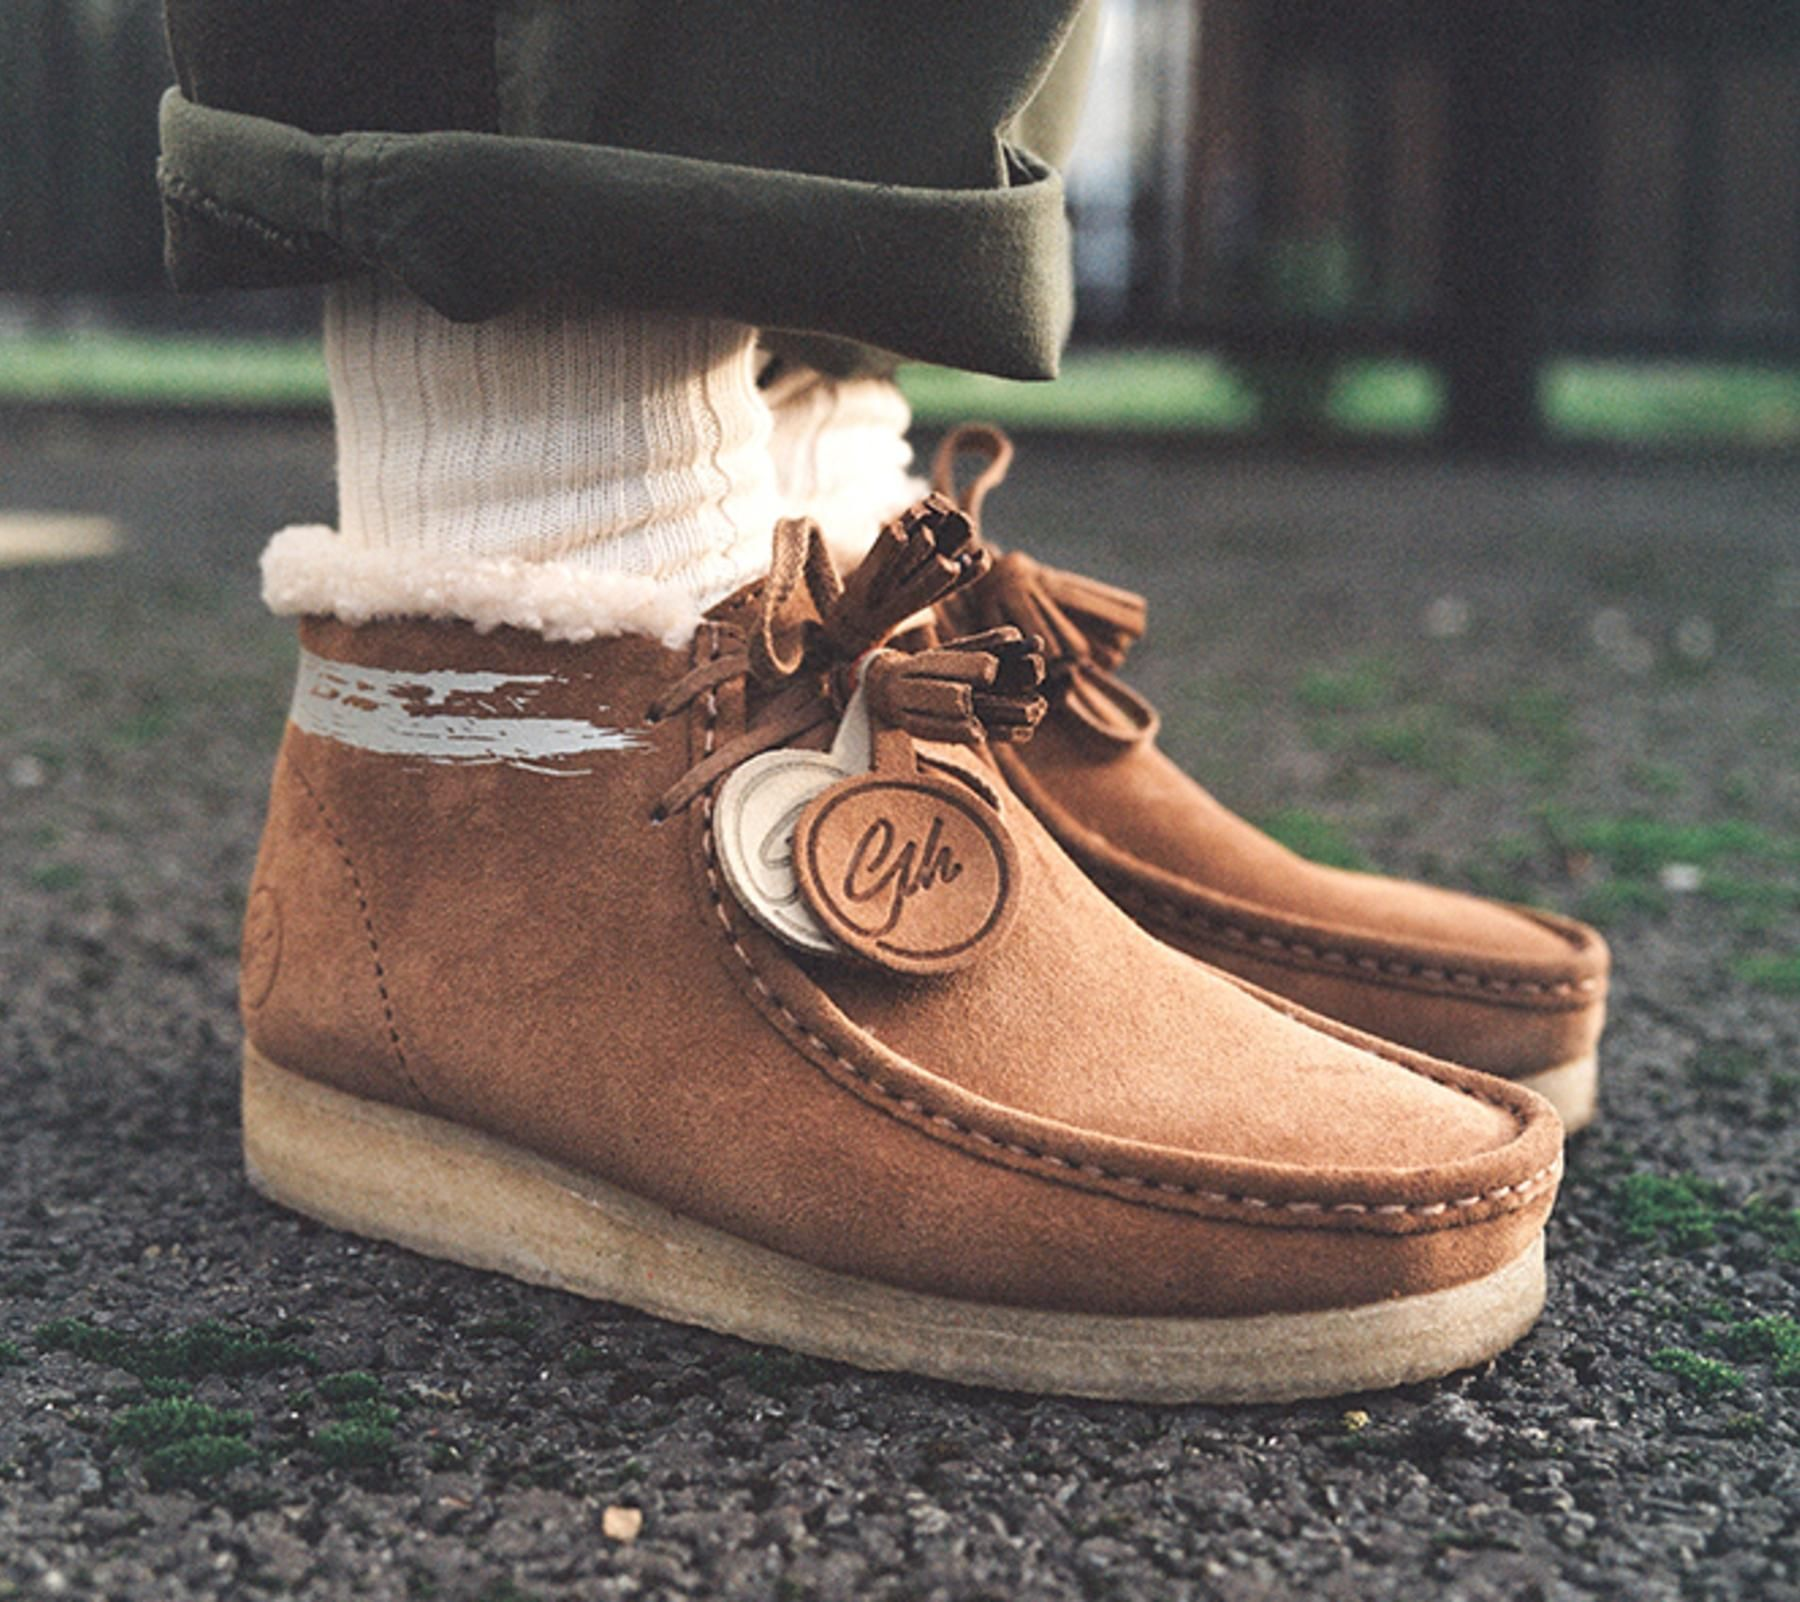 3c092f296 Goodhood Reworks the Clarks Originals Wallabee. A very British collaboration